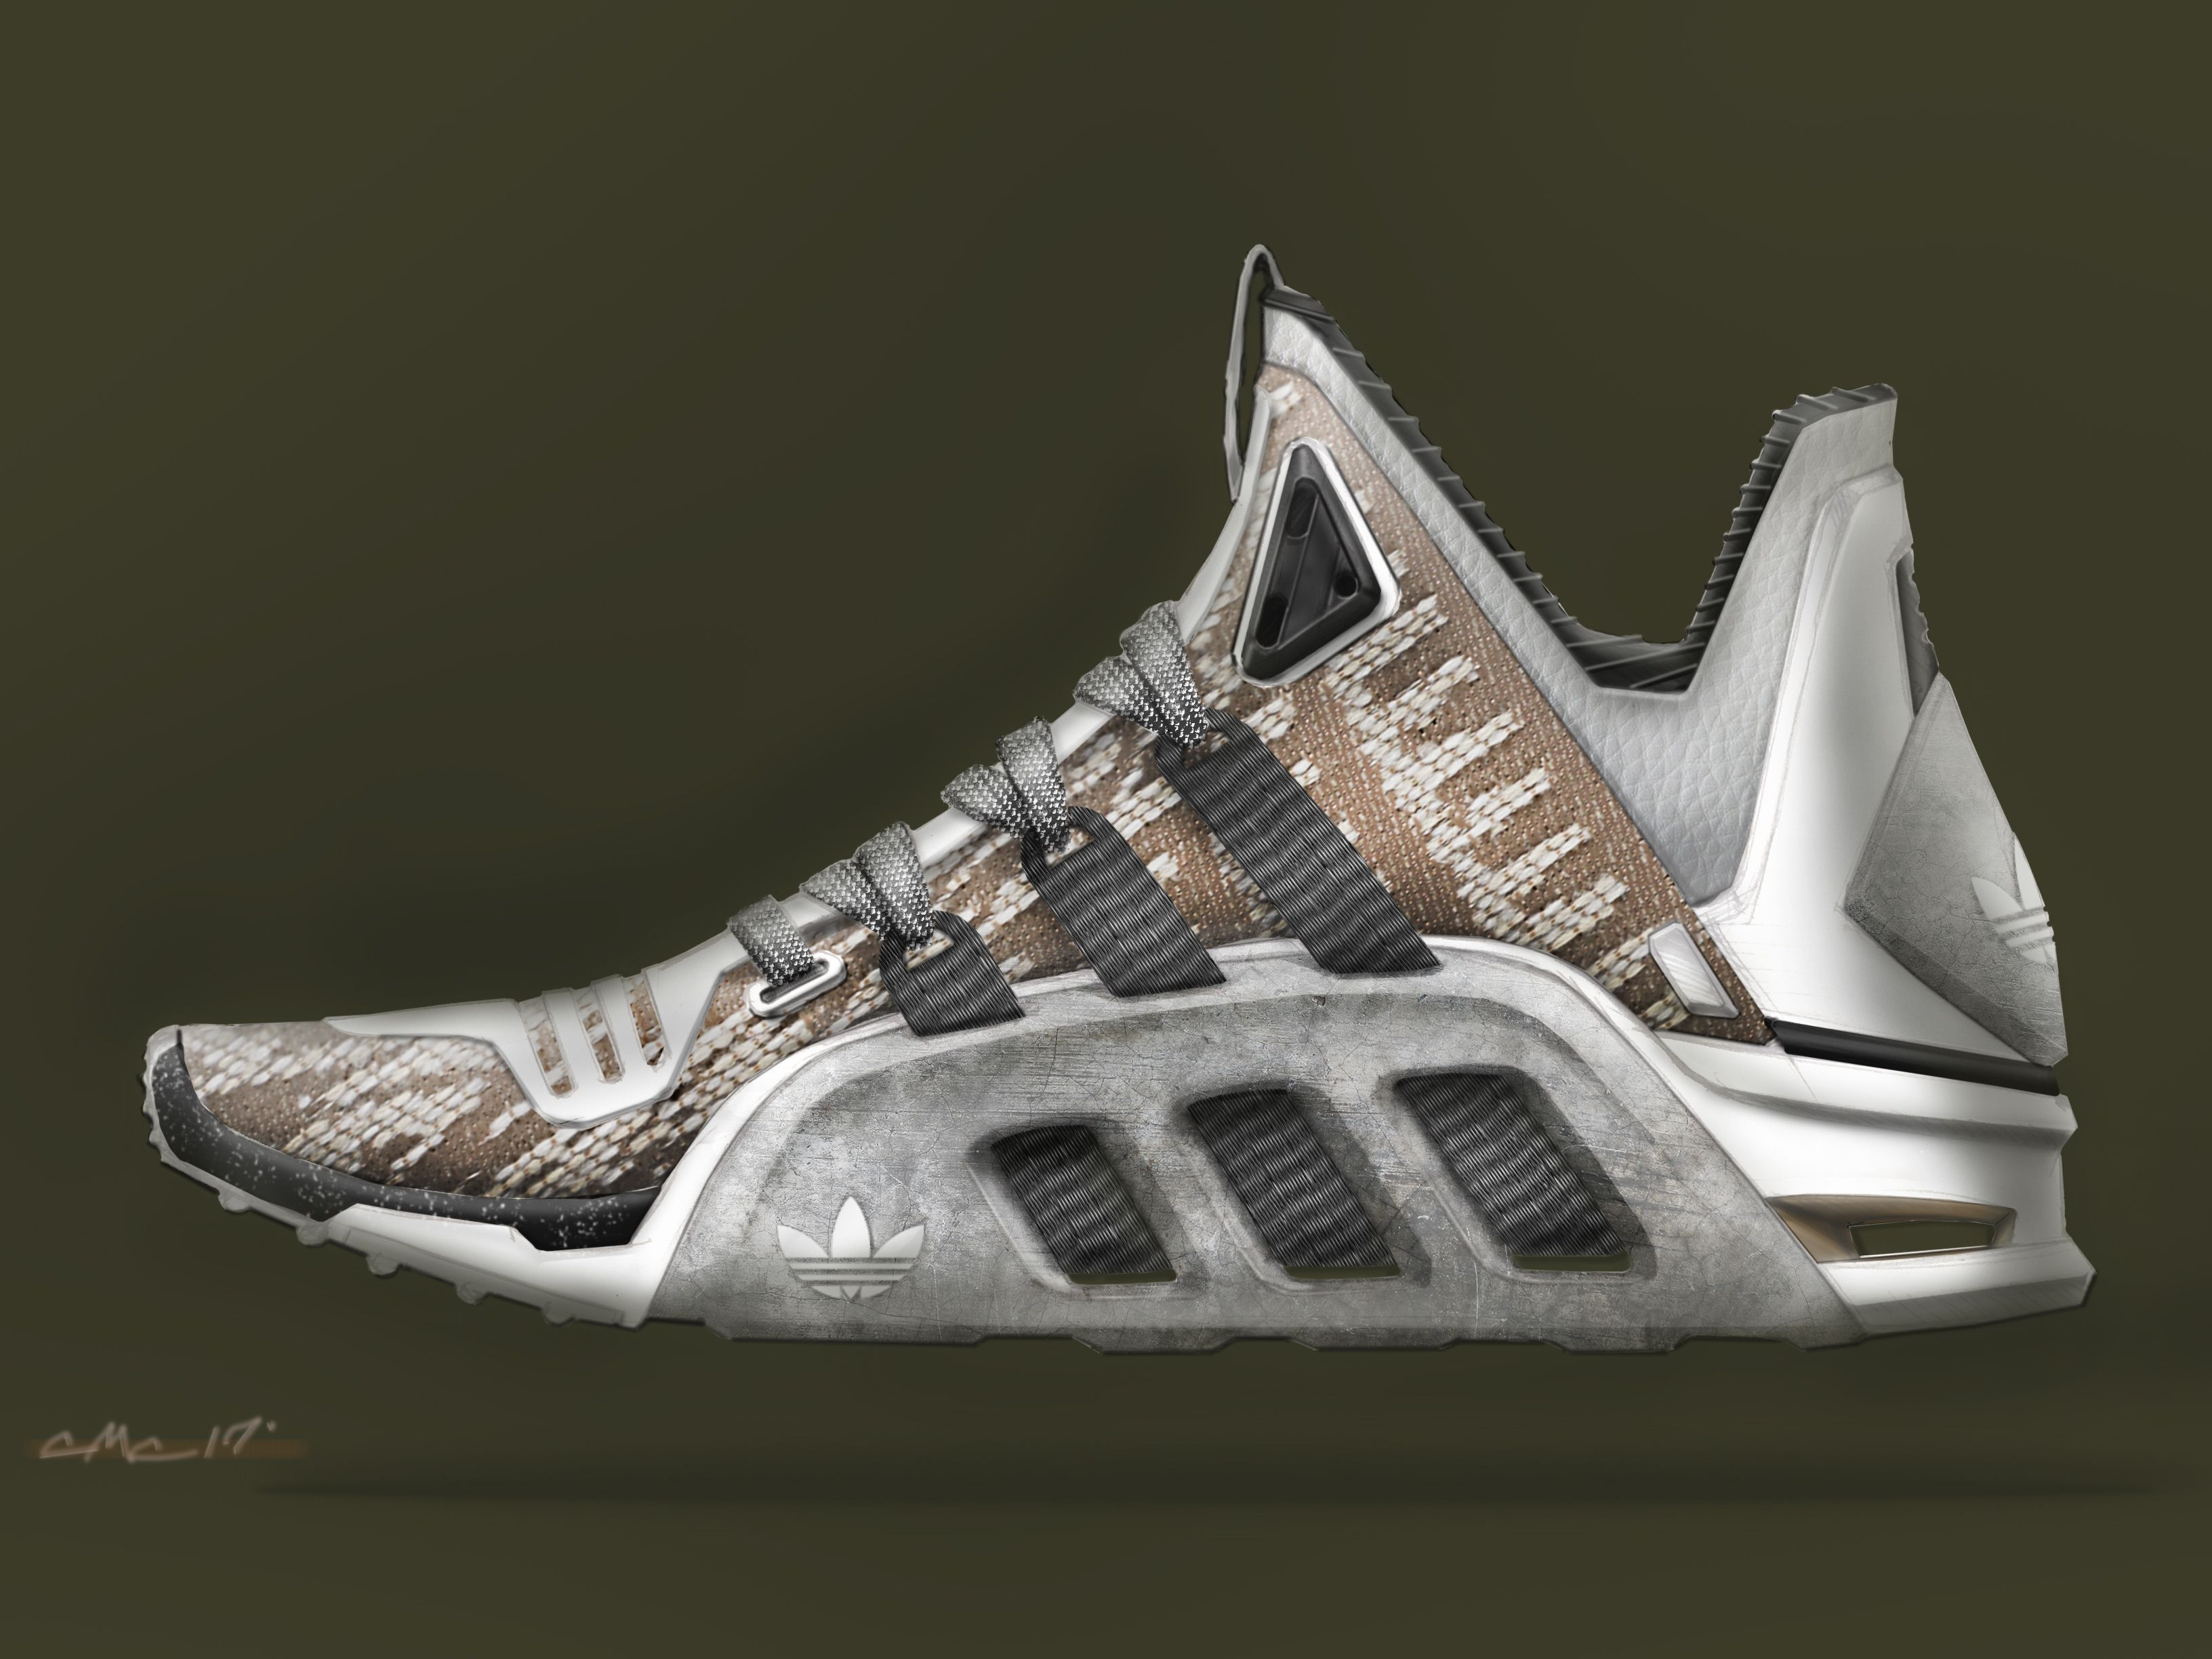 Photoshop rendering of my latest Adidas trainer design